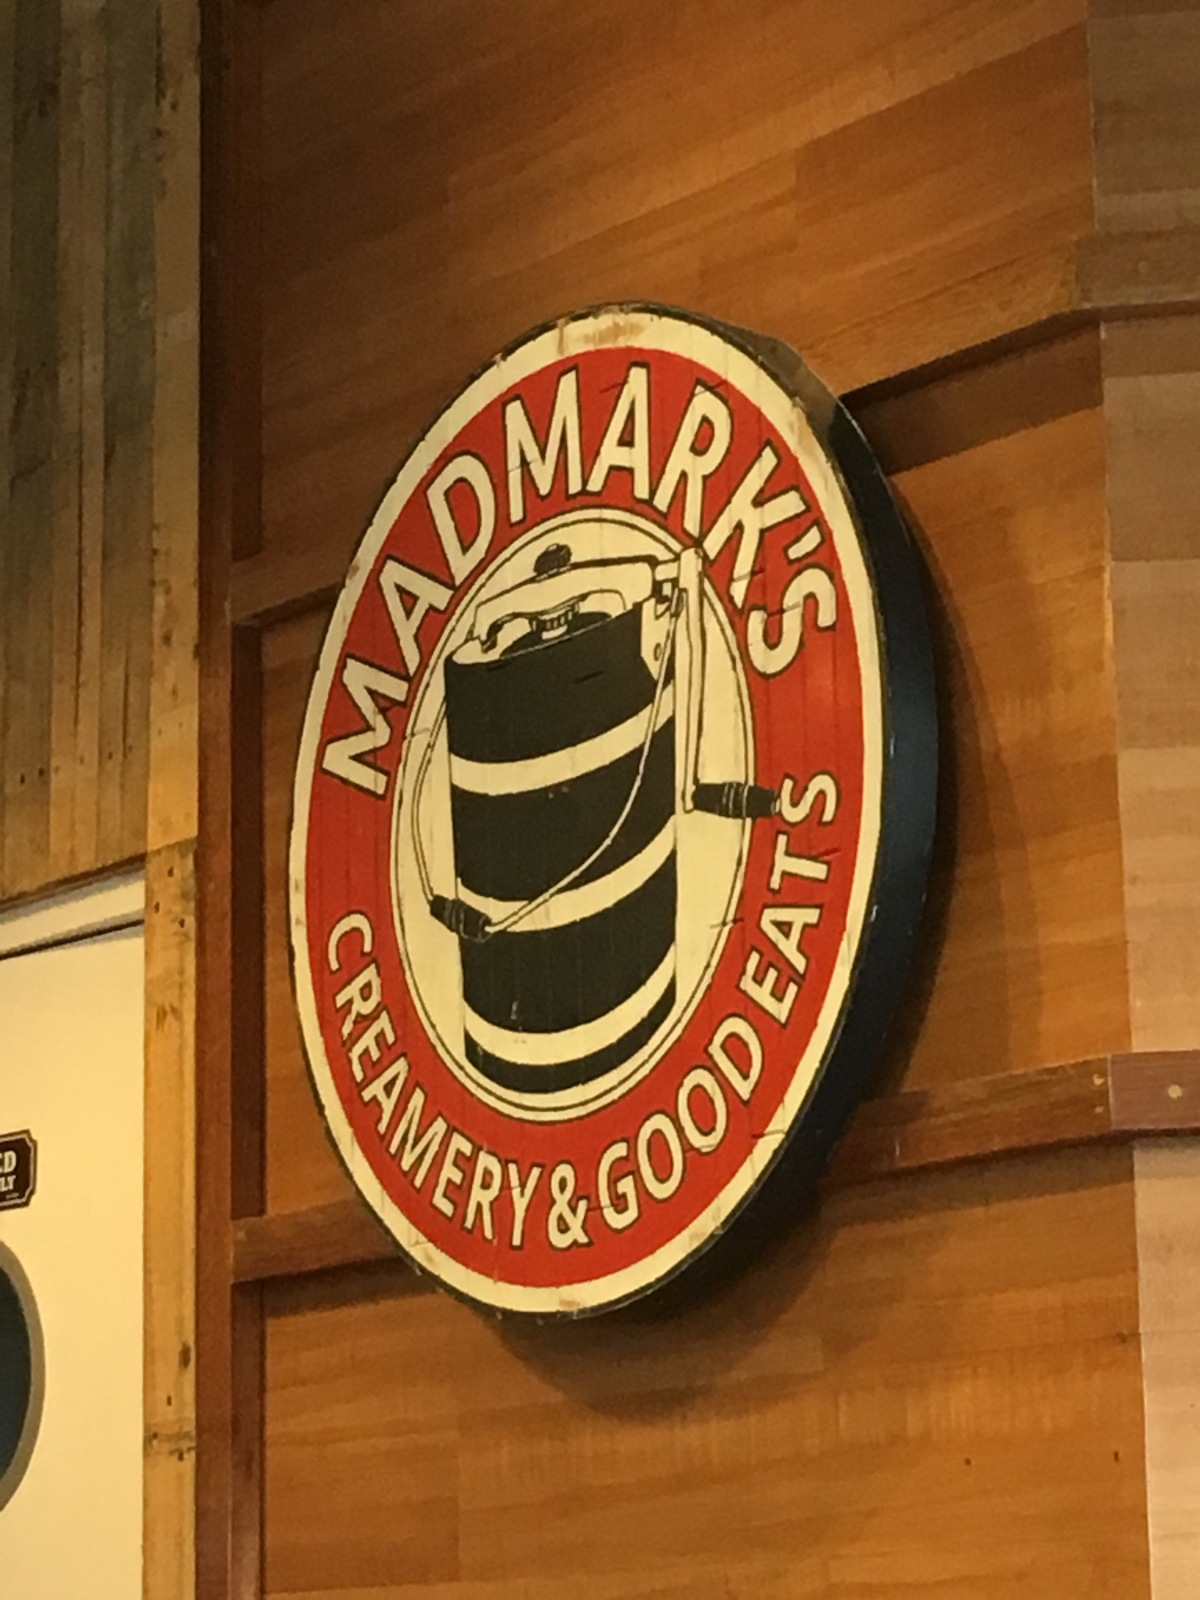 Steak Craving Satisfied at Mad Mark's Creamery and Good Eats, Glorietta